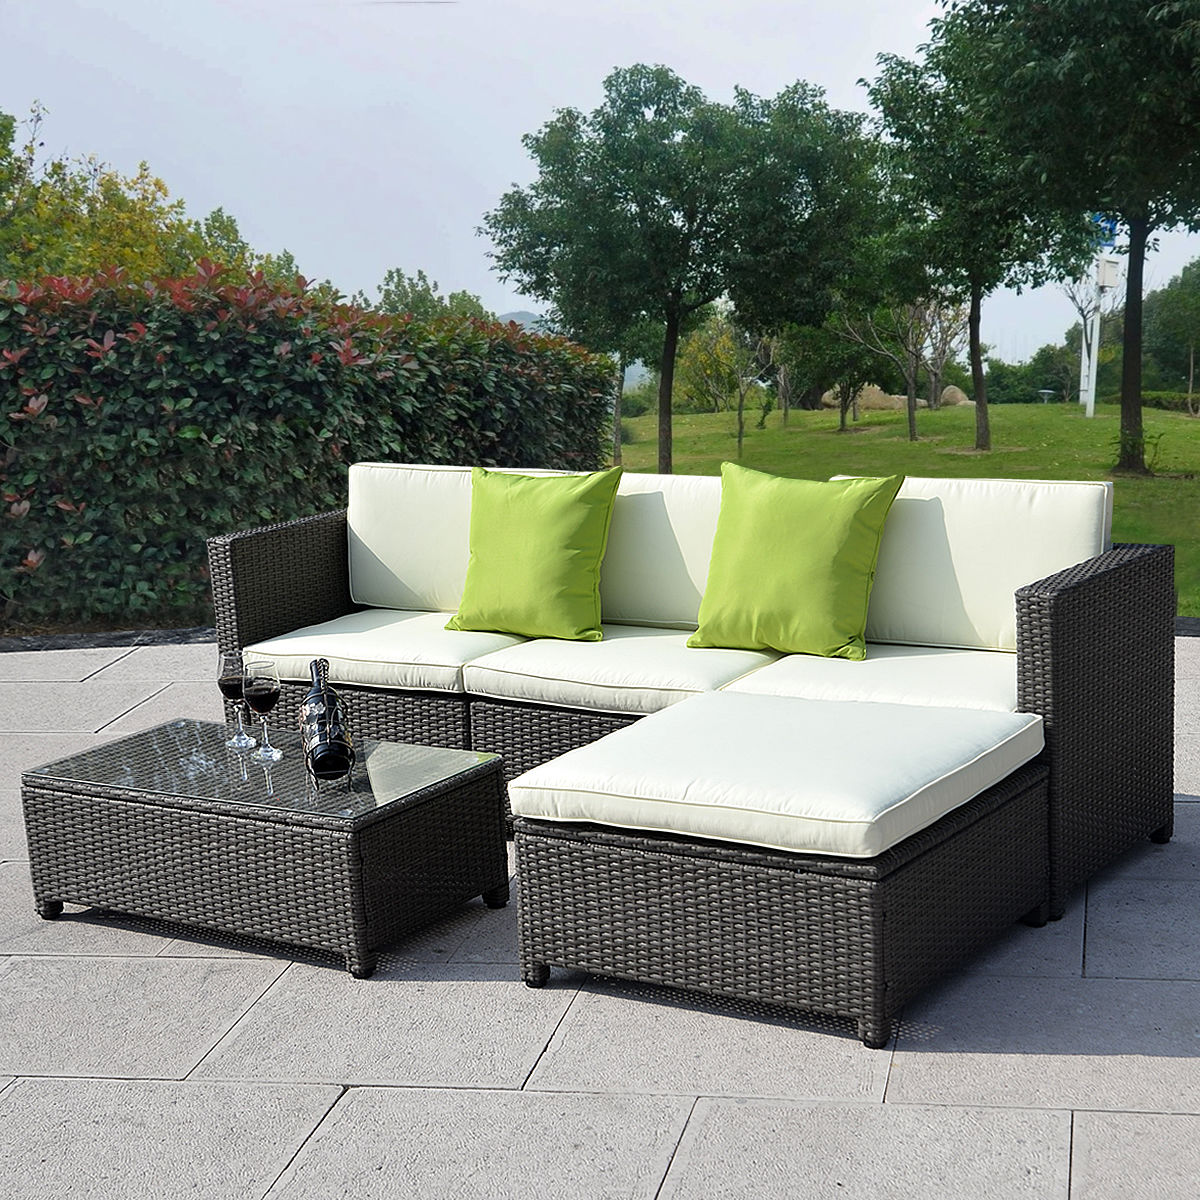 Outdoor patio wicker sofa set 5pc pe rattan for Outdoor garden set